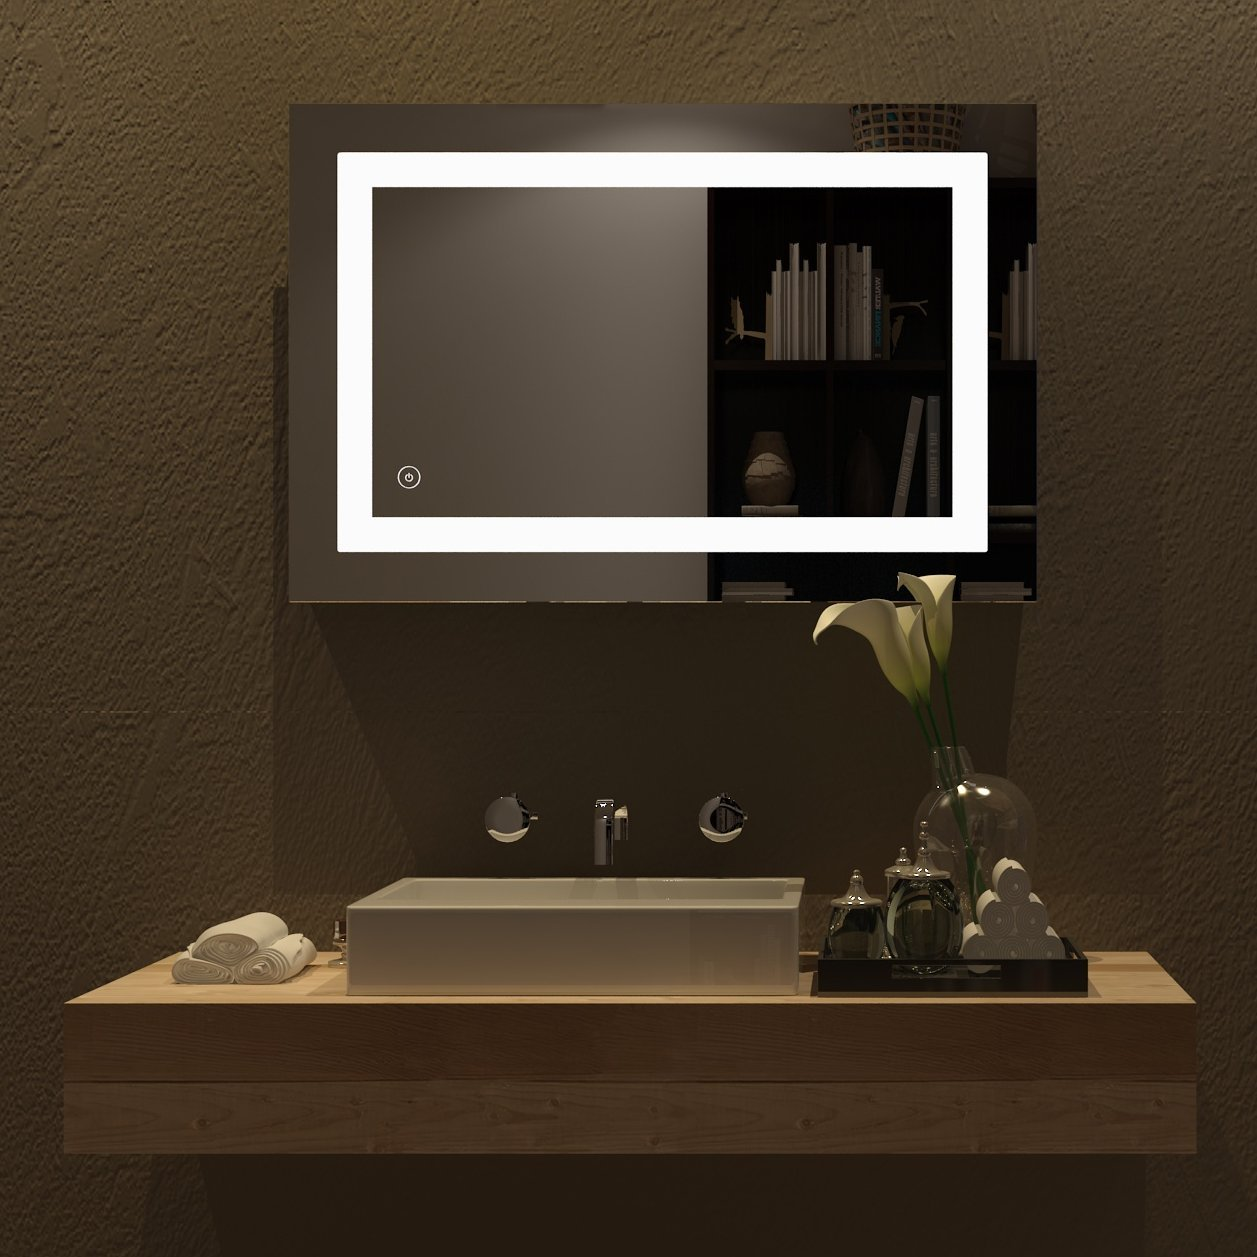 HOME SCEVA Vanity Bathroom LED Lighted Mirrors Frameless Backlit Wall Mirror anti fog with touch button(35.4 x 23.6 In)